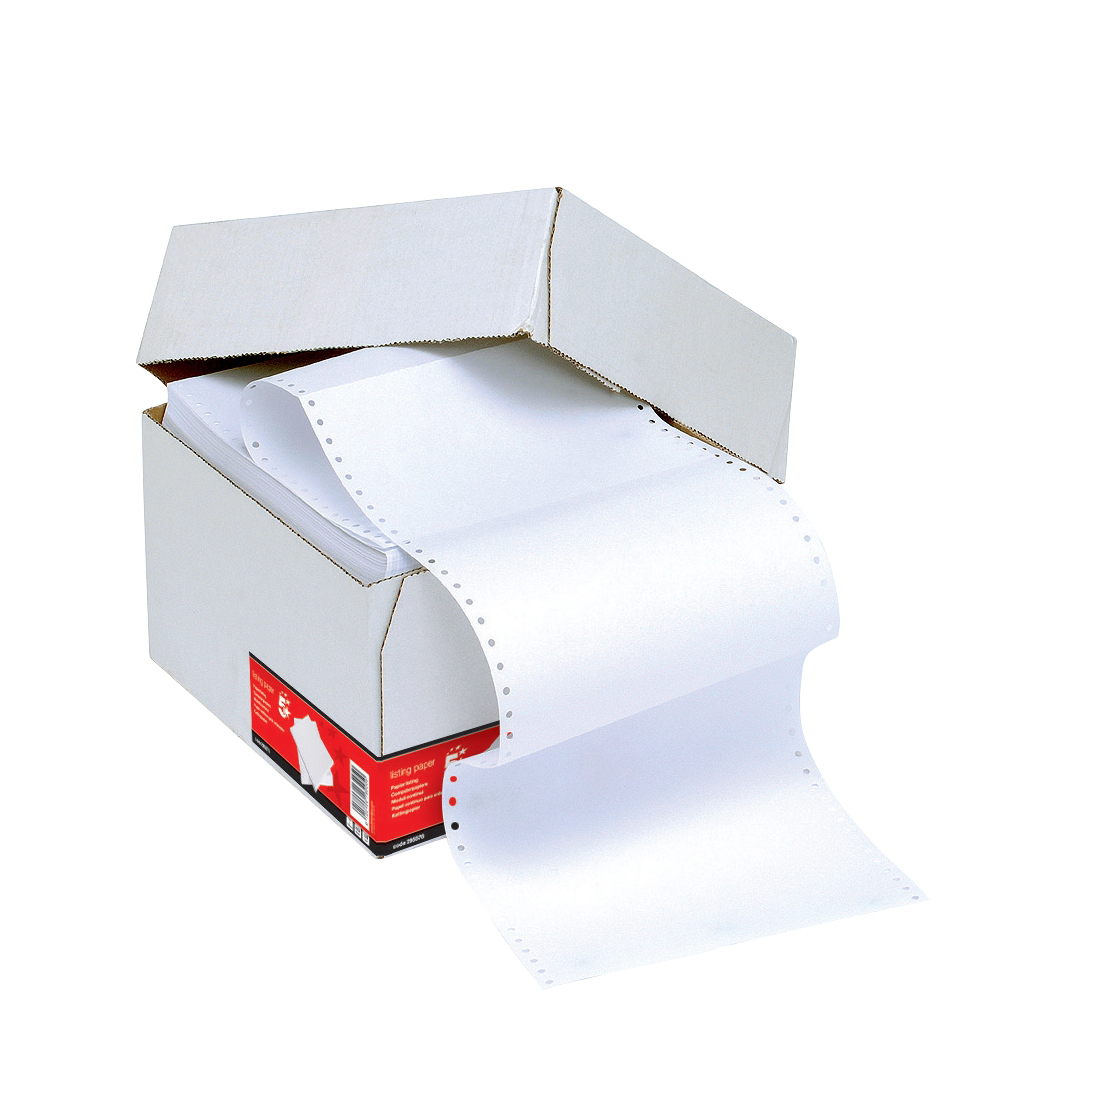 5 Star Office Listing Paper 1-Part Microperforated 1500 Sheets per Box 90gsm A4 Plain 1 Box